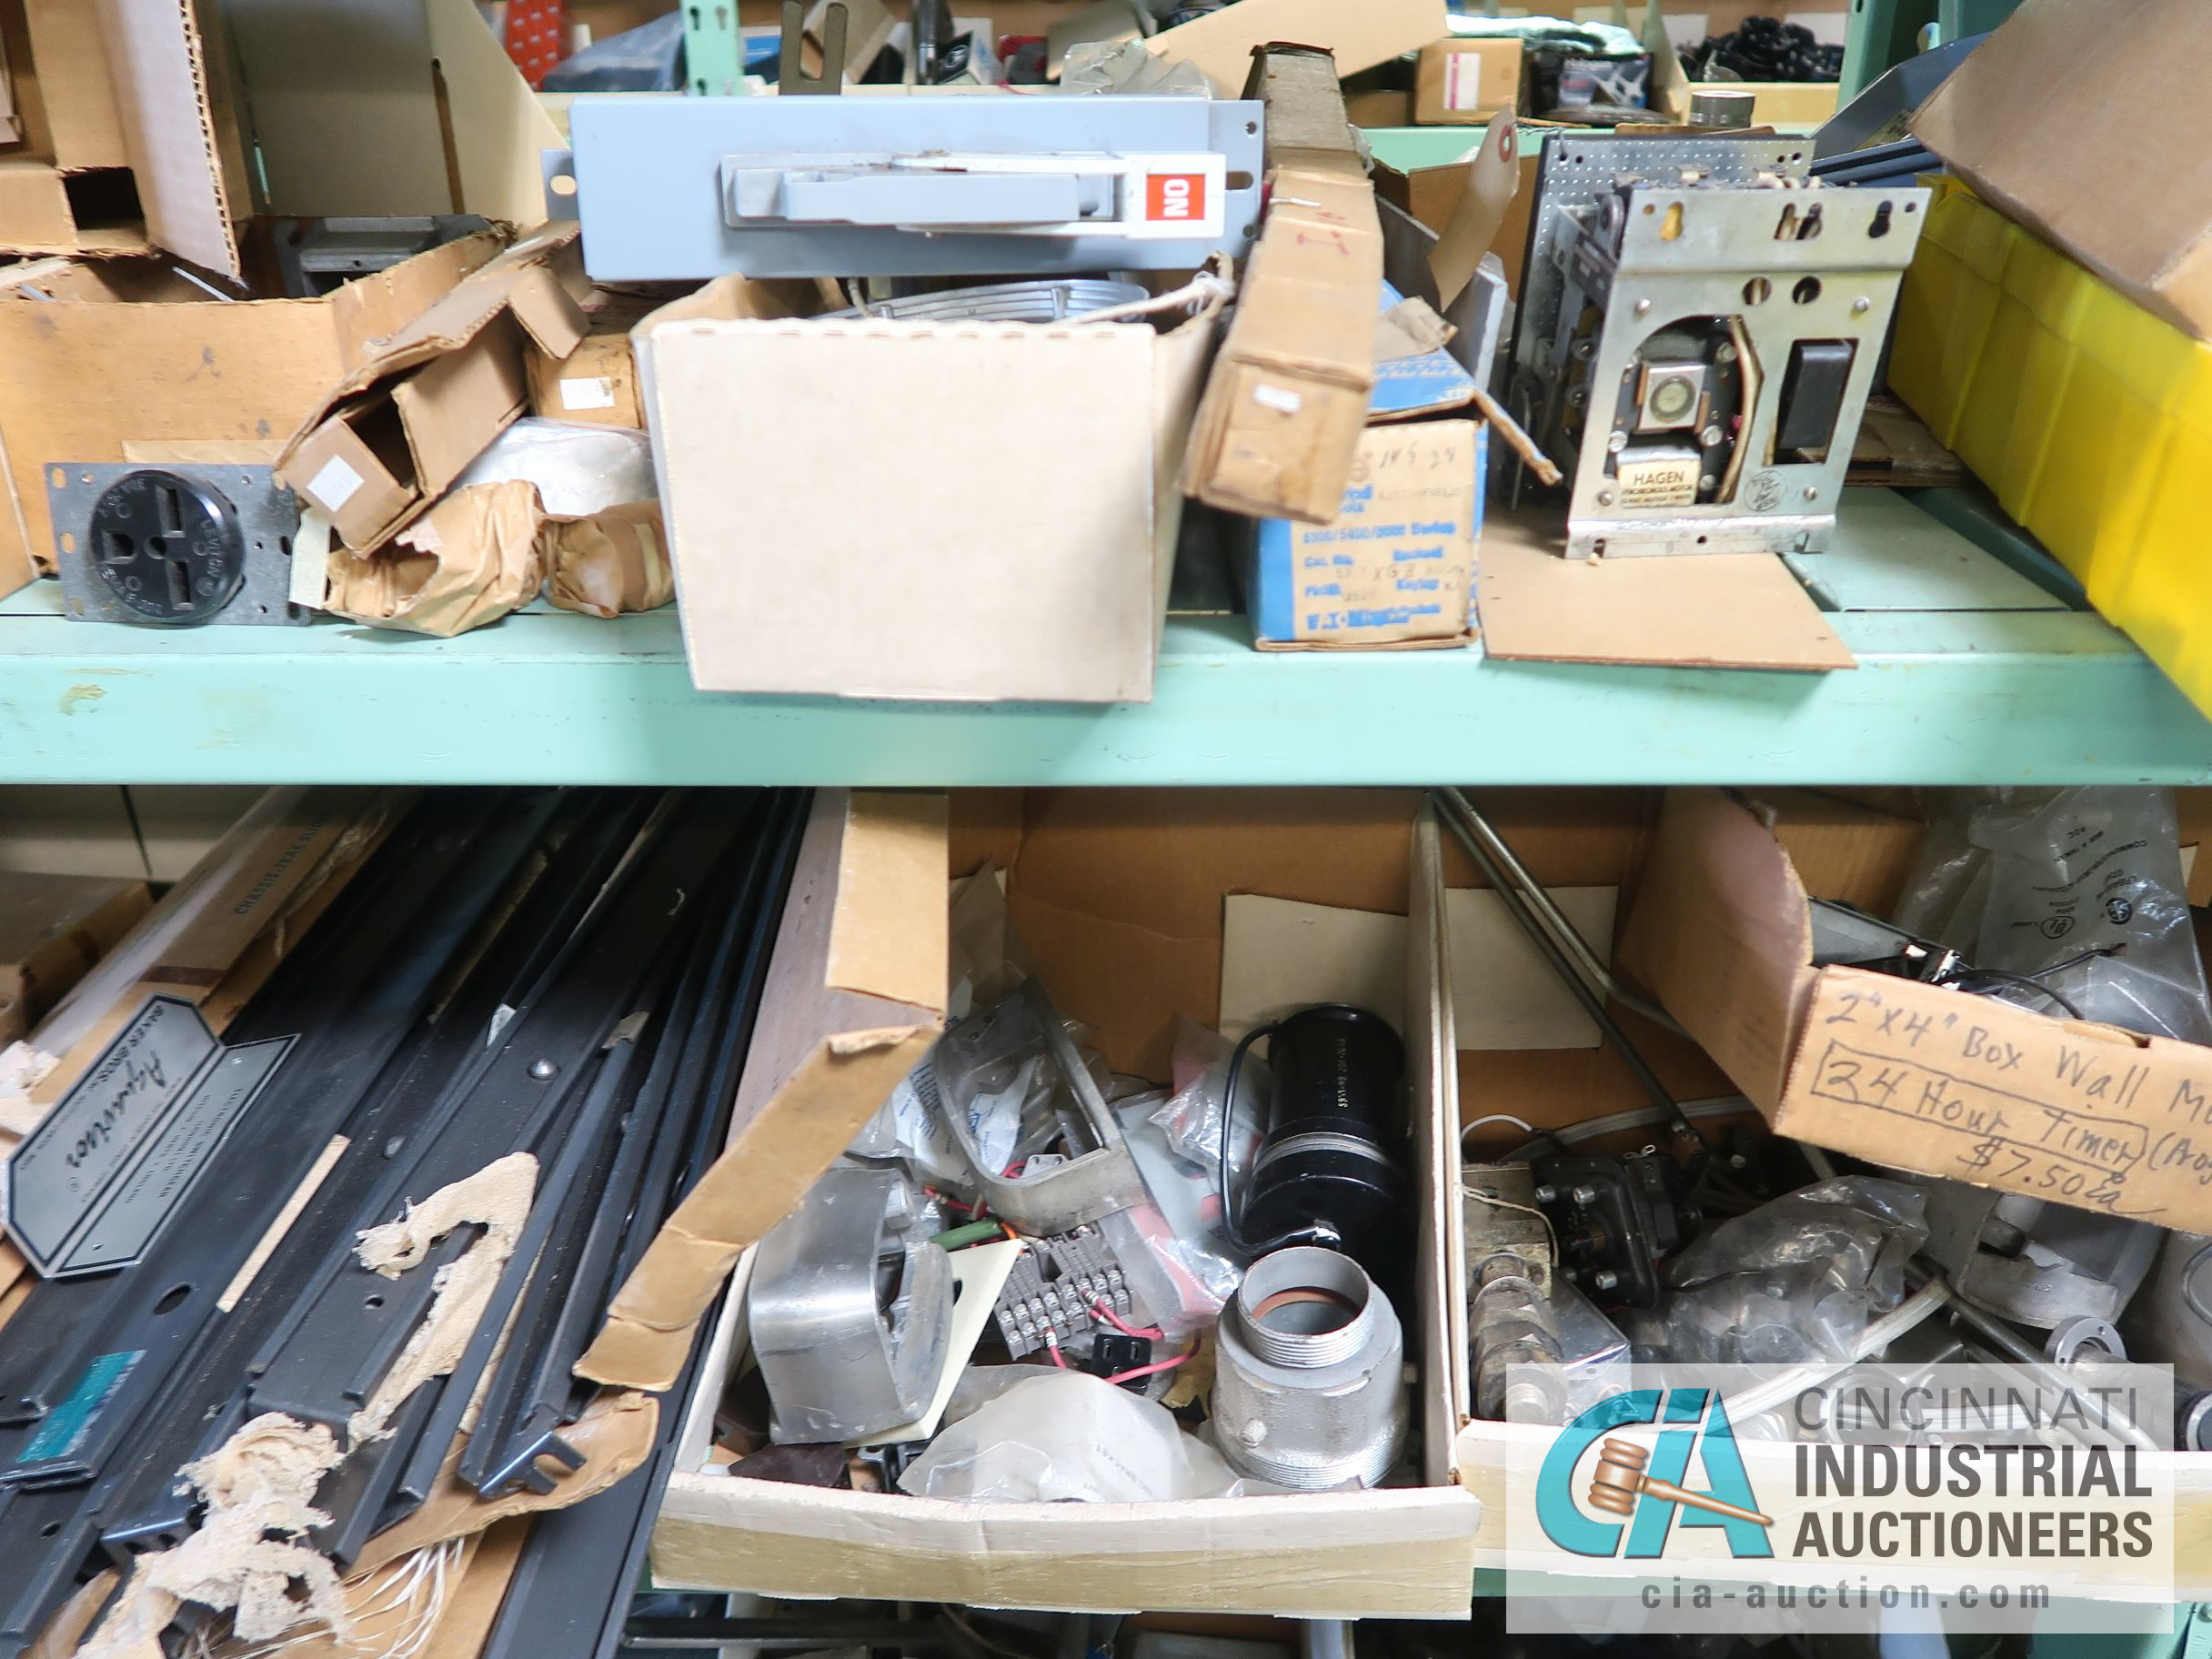 CONTENTS OF (6) RACKS INCLUDING MISCELLANEOUS AUTOMOTIVE PARTS, BREAKS, ROTORS, GASKETS, MOUNTING - Image 13 of 38